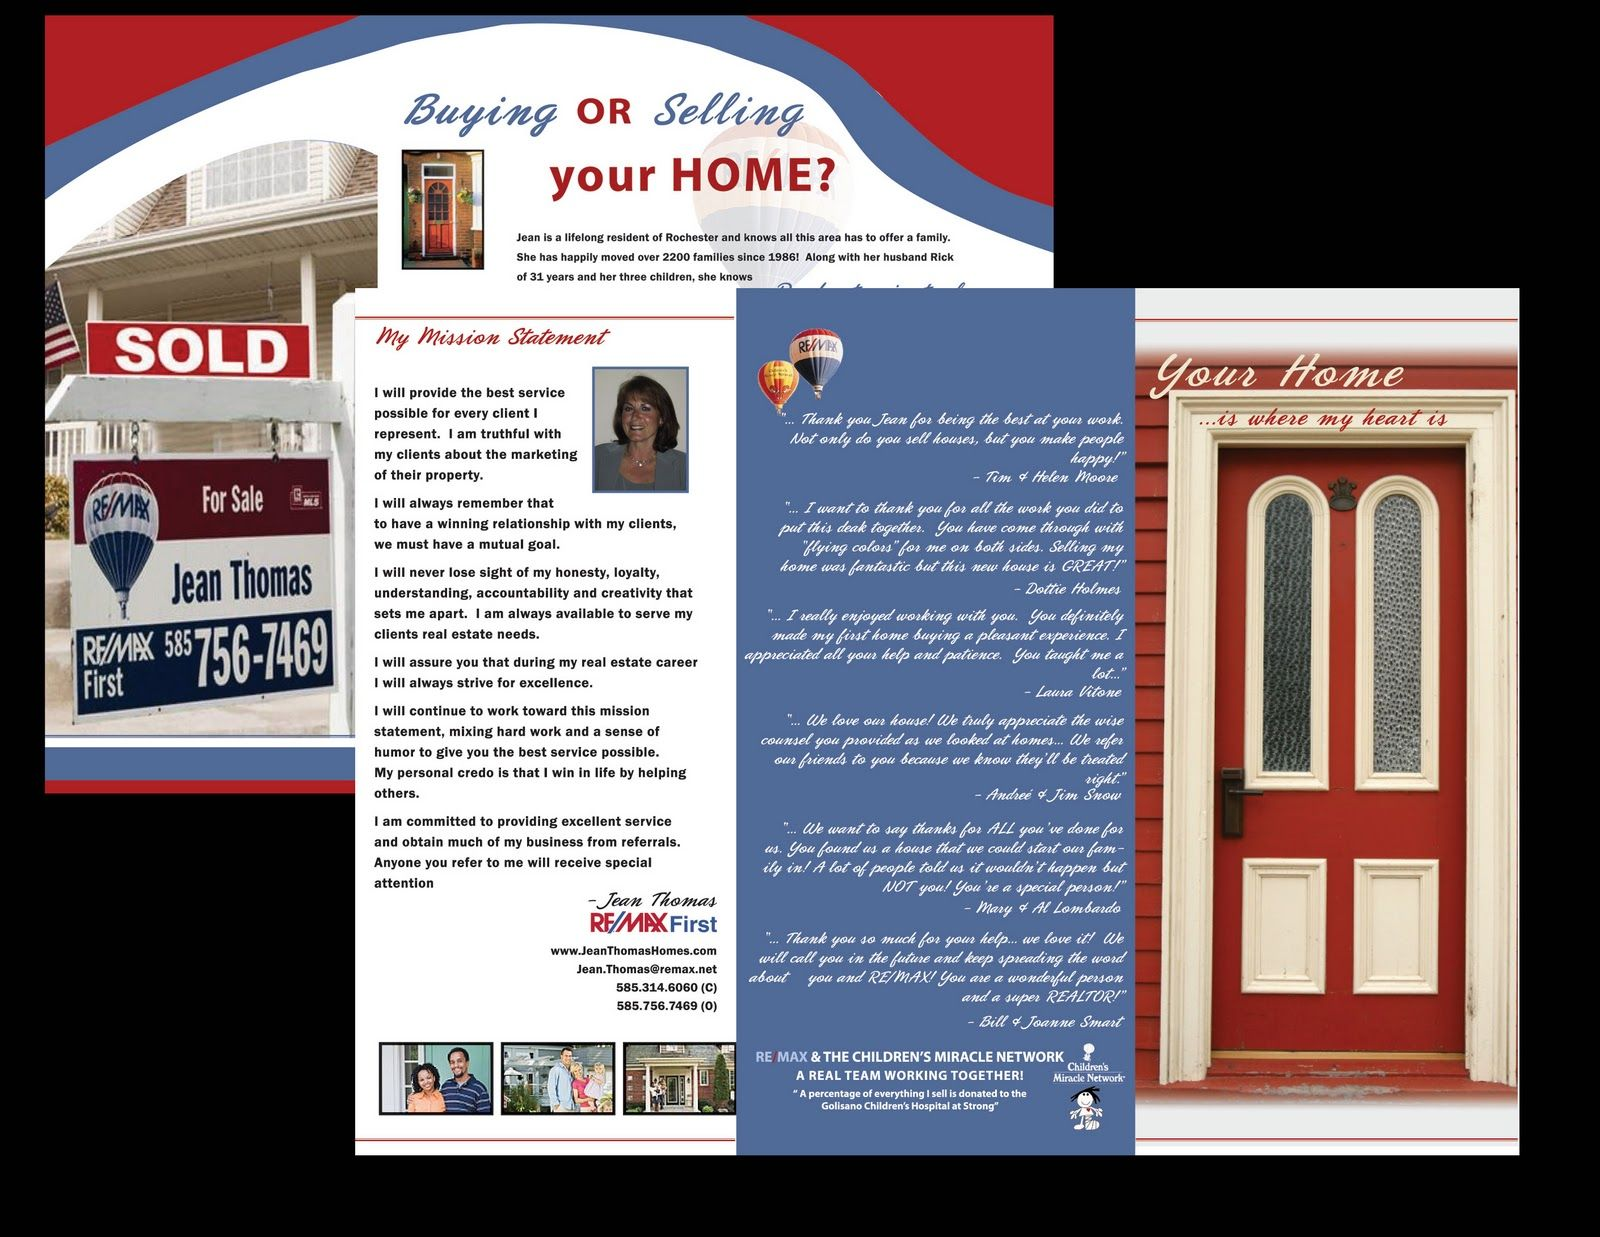 best images about examples flyers postcards etc 17 best images about examples flyers postcards etc the flyer digital invitations and email newsletters